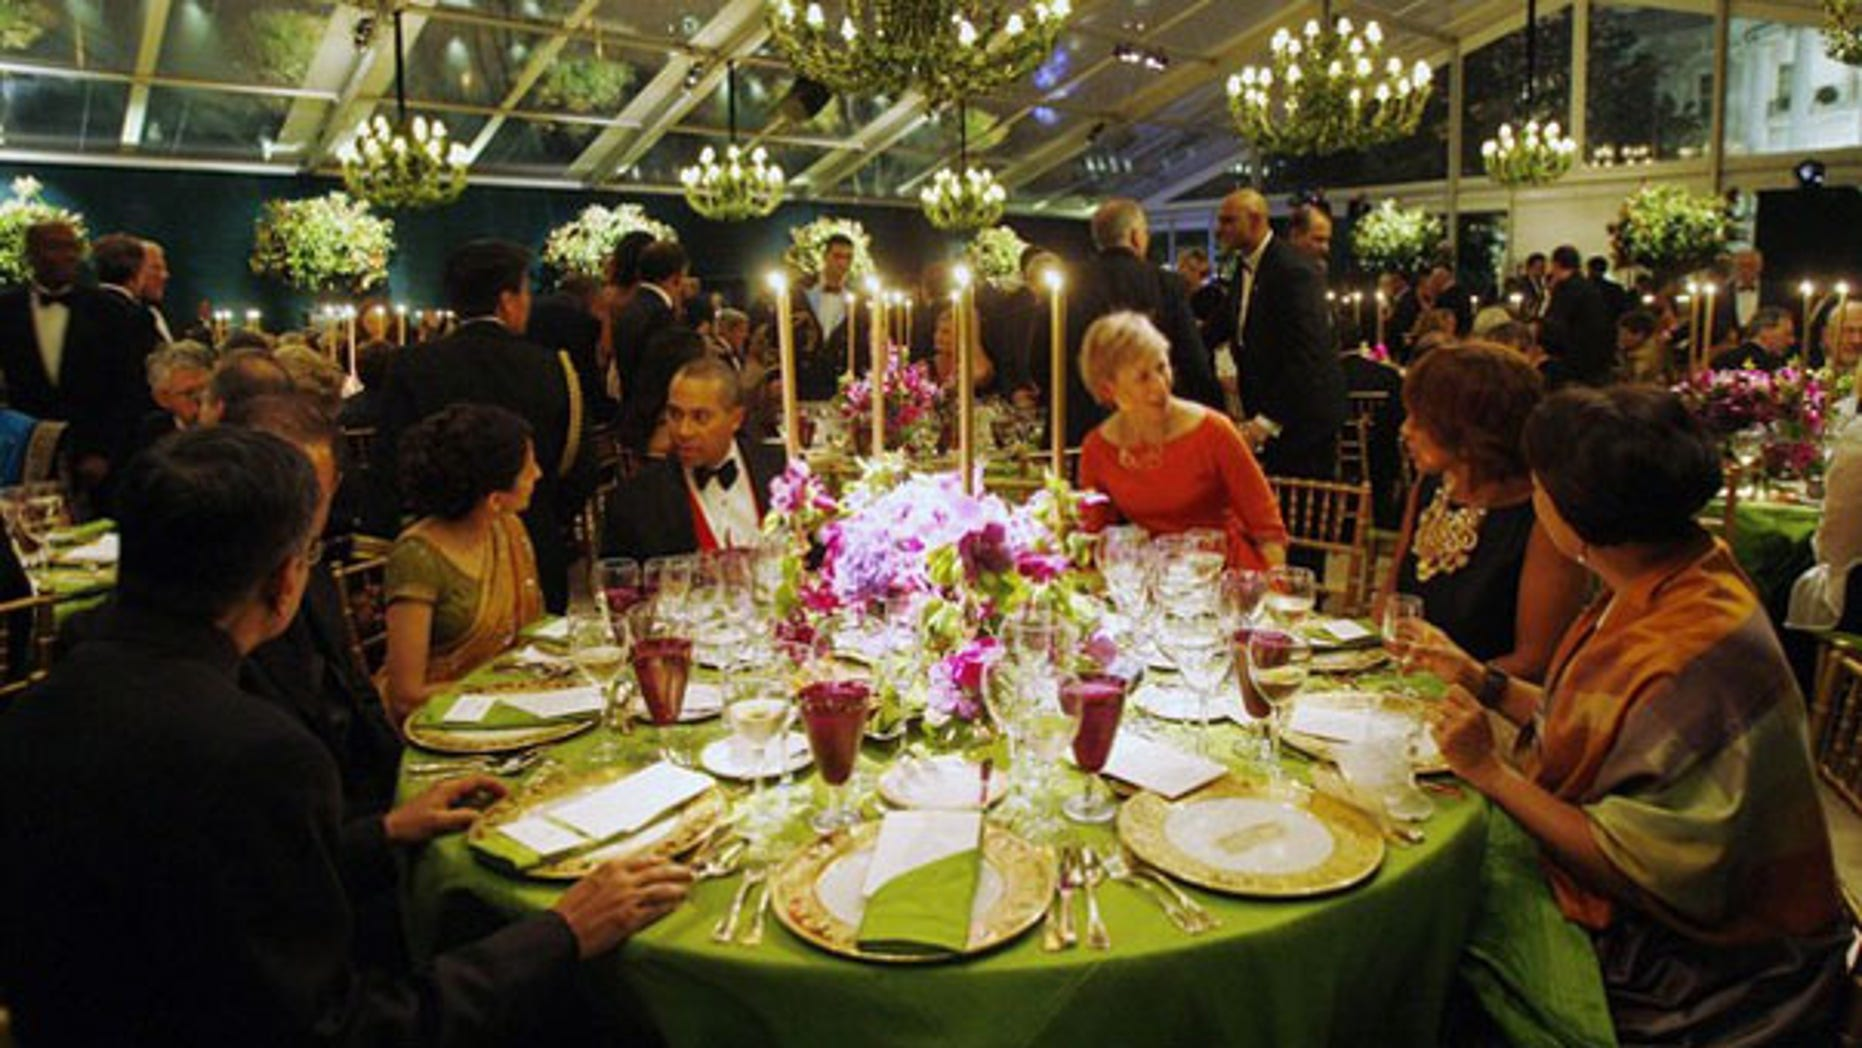 Shown here are tables and guests during a state dinner for India's Prime Minister Manmohan Singh in a giant tent on the South Lawn of the White House Nov. 24, 2009. (Reuters Photo)